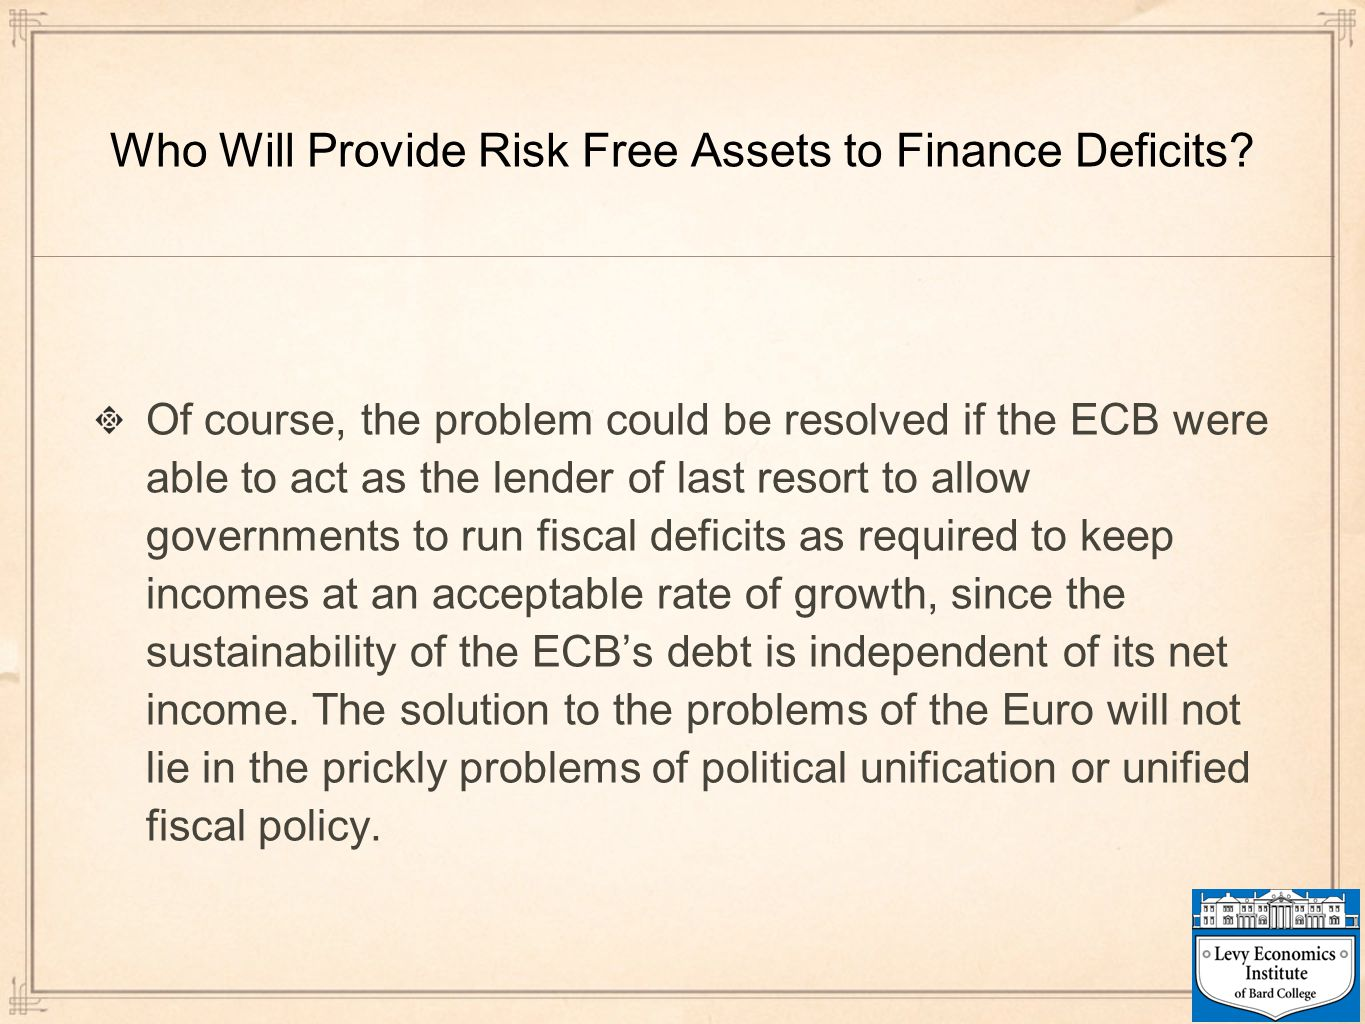 Who Will Provide Risk Free Assets to Finance Deficits